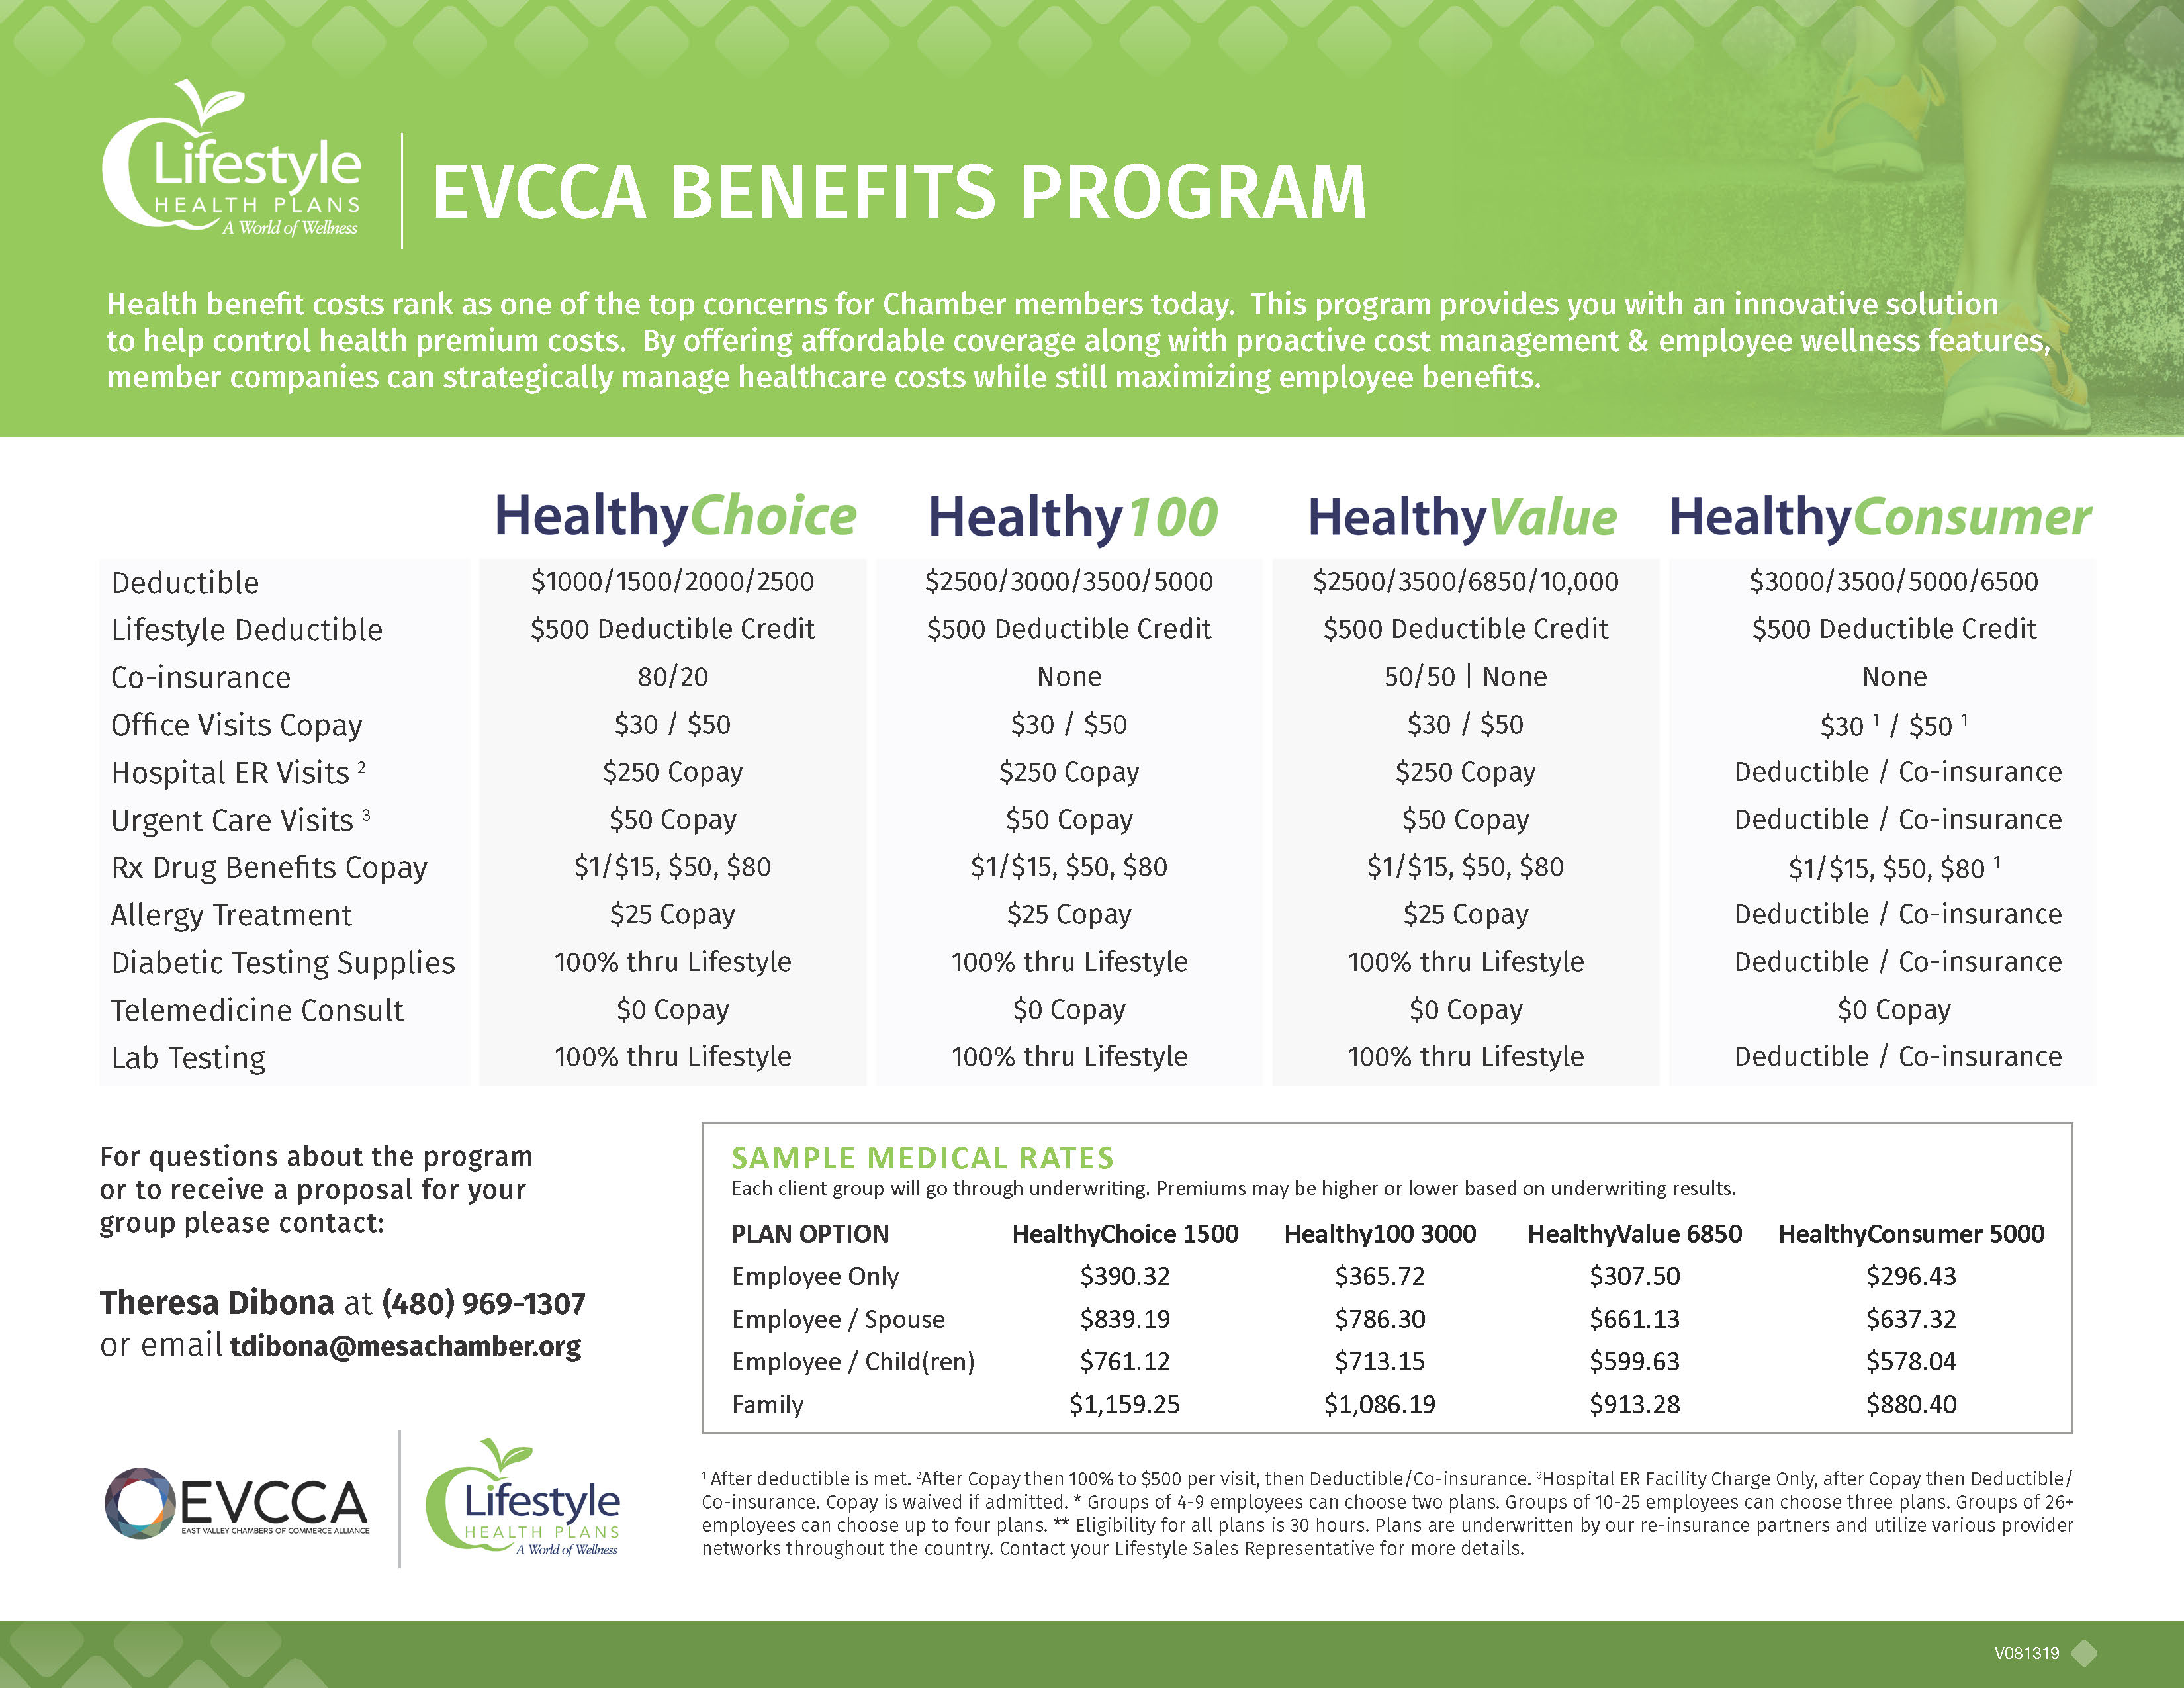 EVCCA Healthcare Highlights